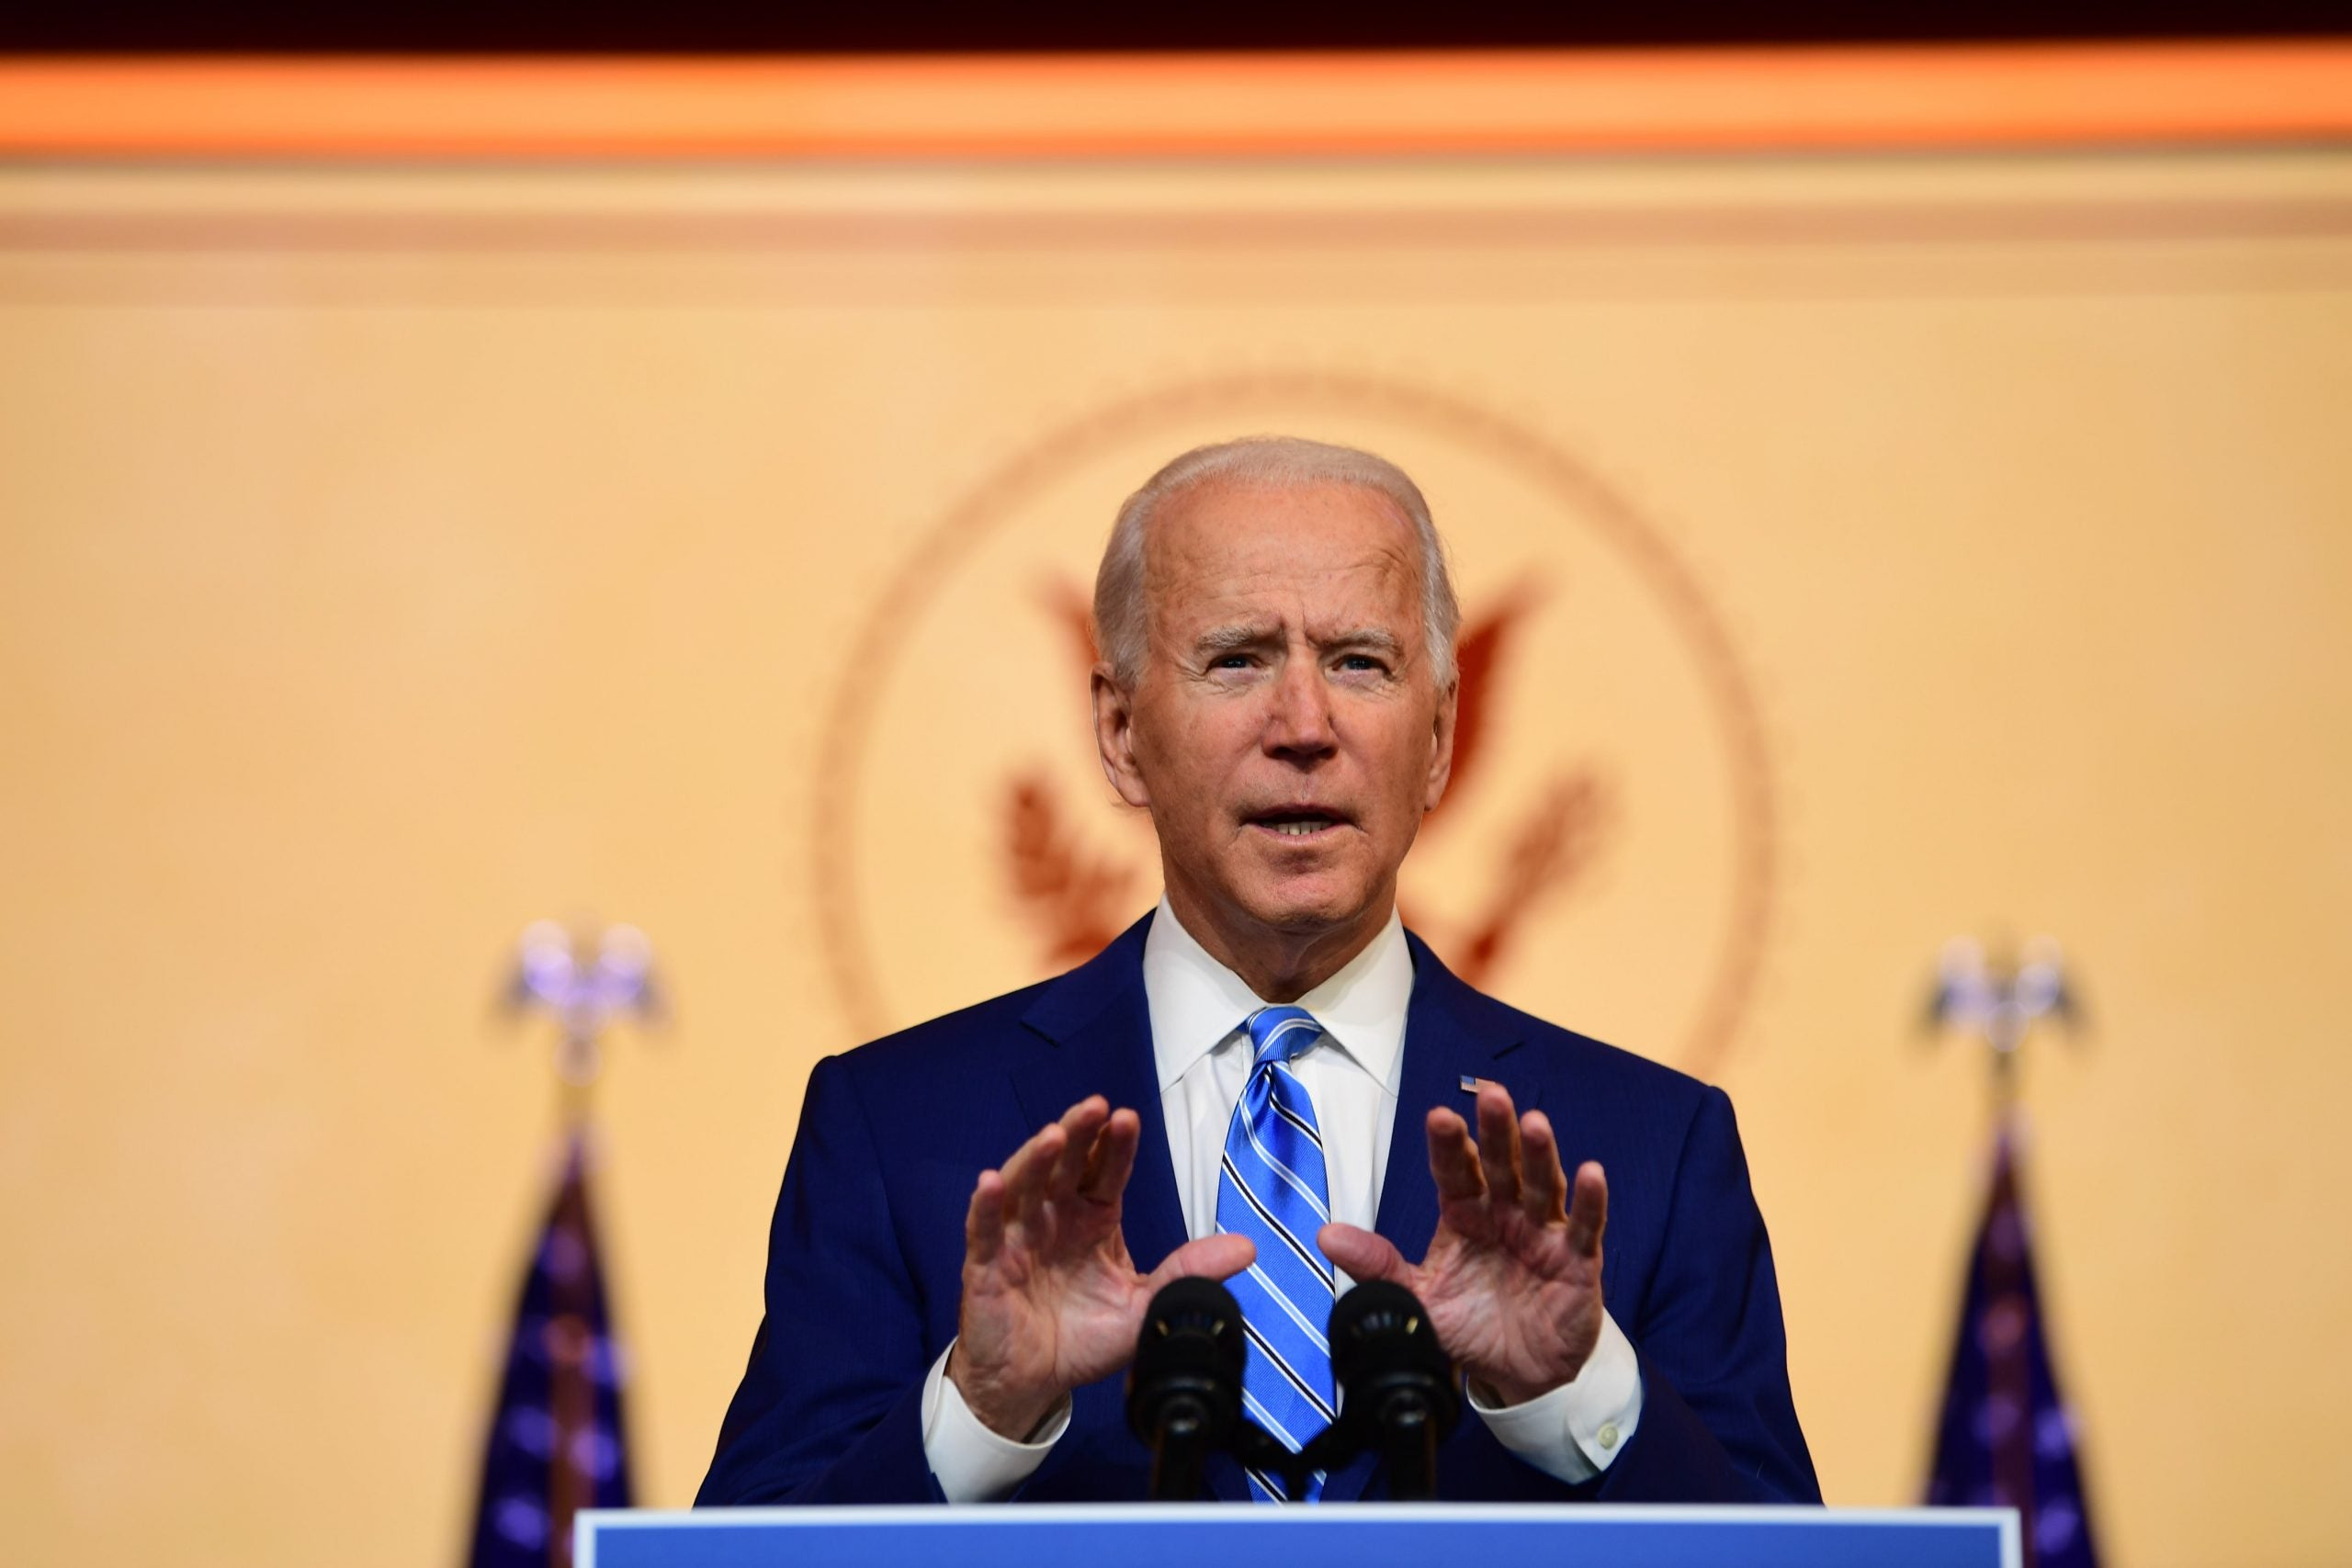 What a Biden administration means for the prospects of multilateralism